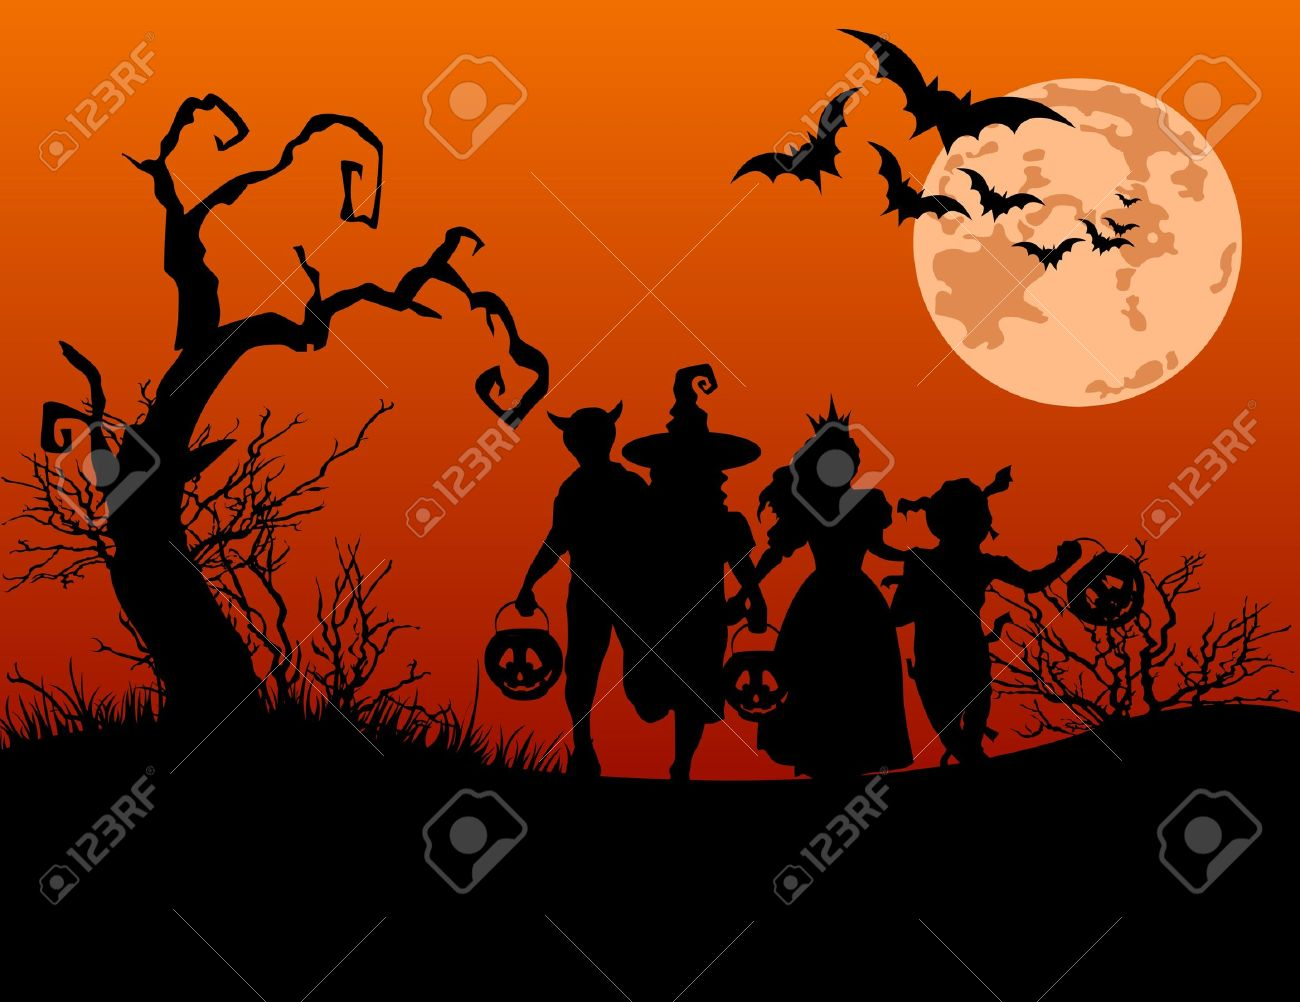 Halloween background with silhouettes of children trick or treating in Halloween costume Stock Vector - 10487114